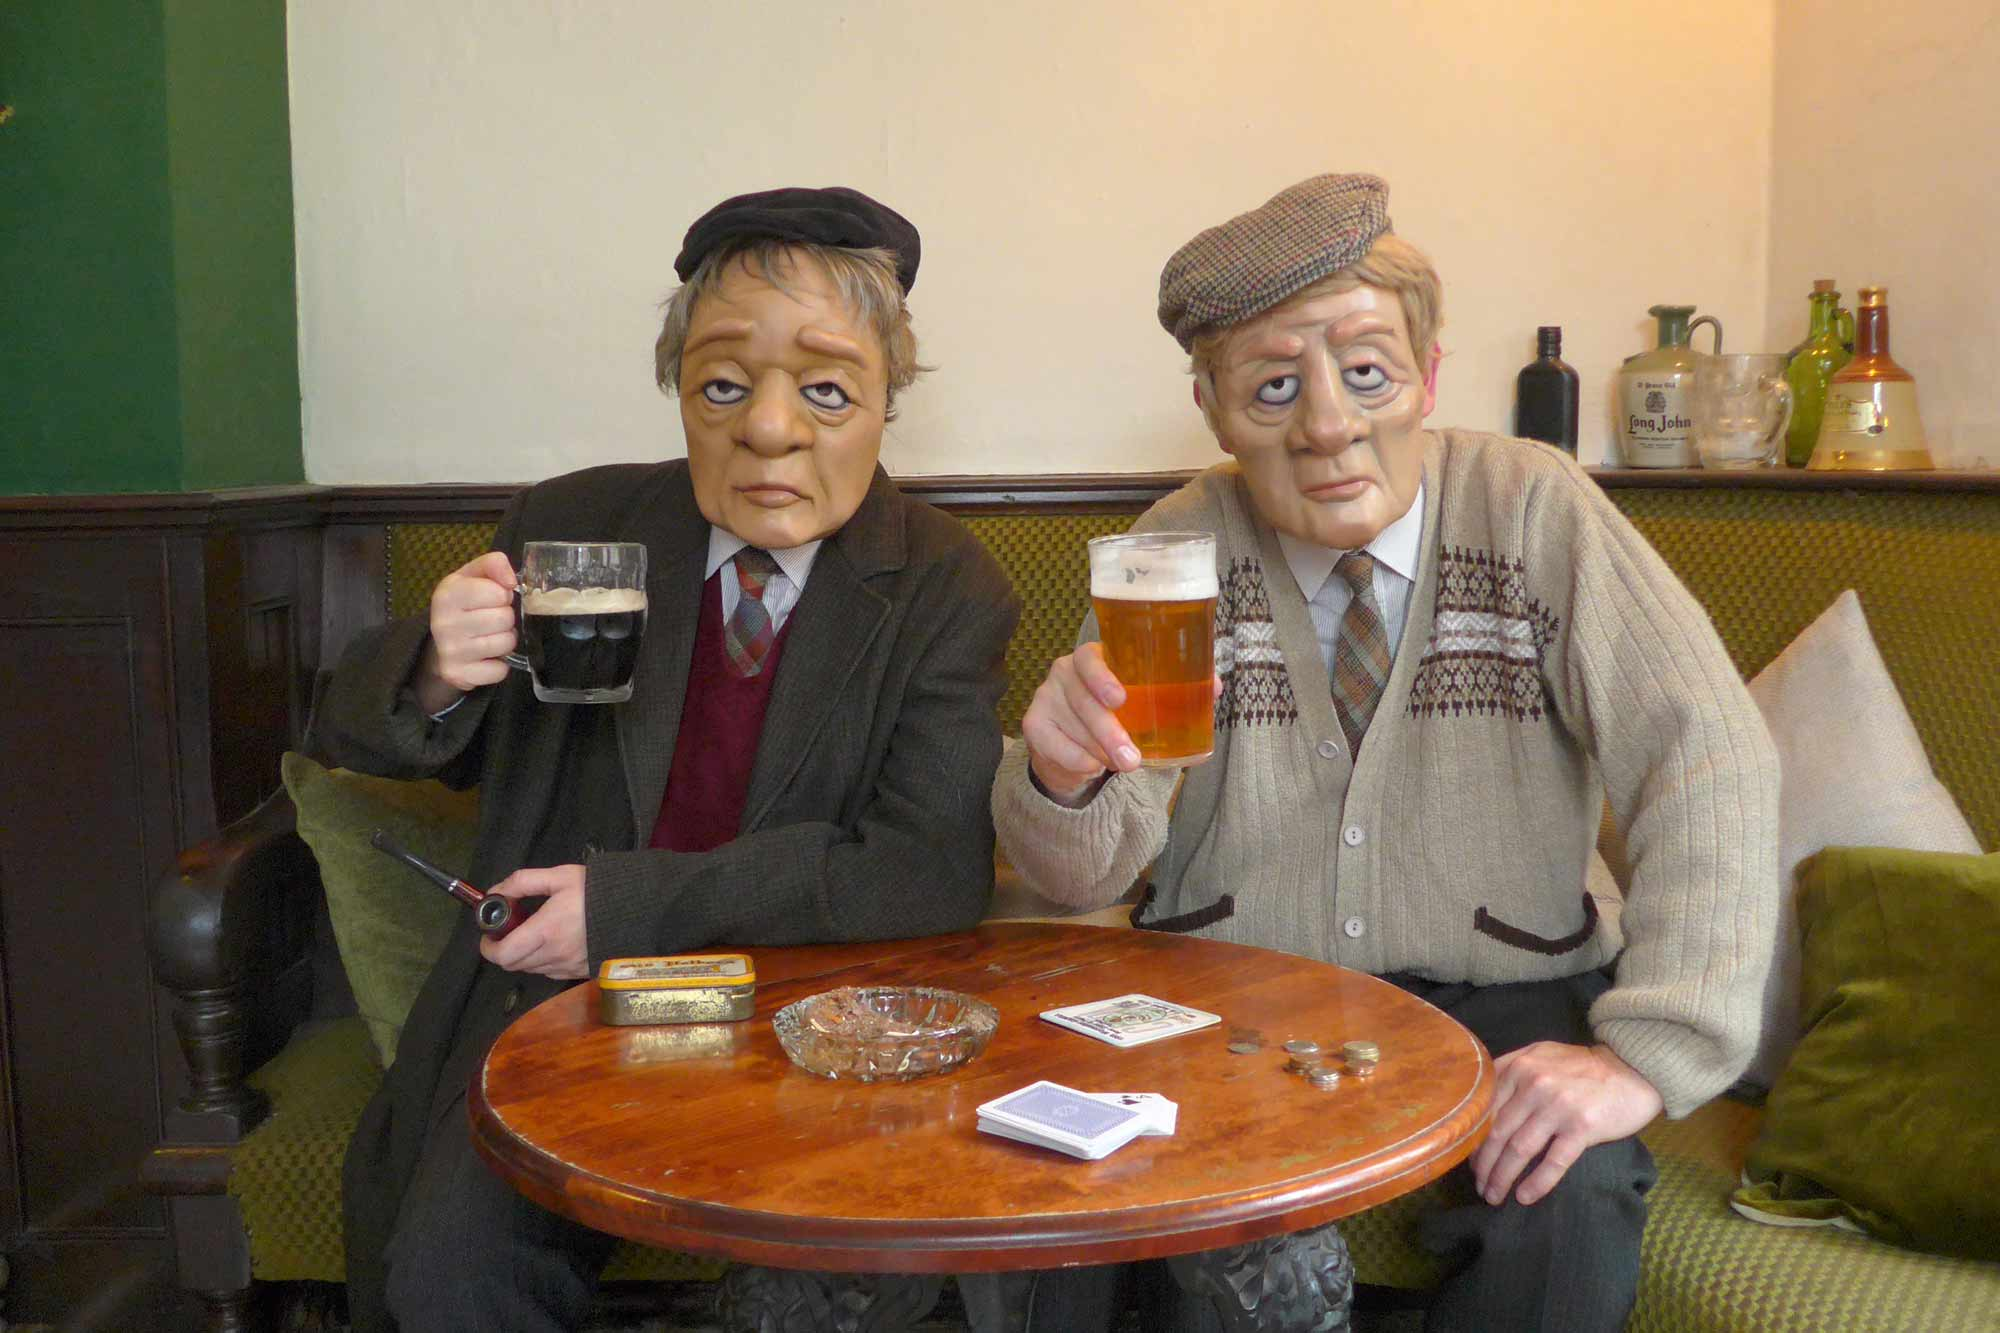 Two older men say cheers